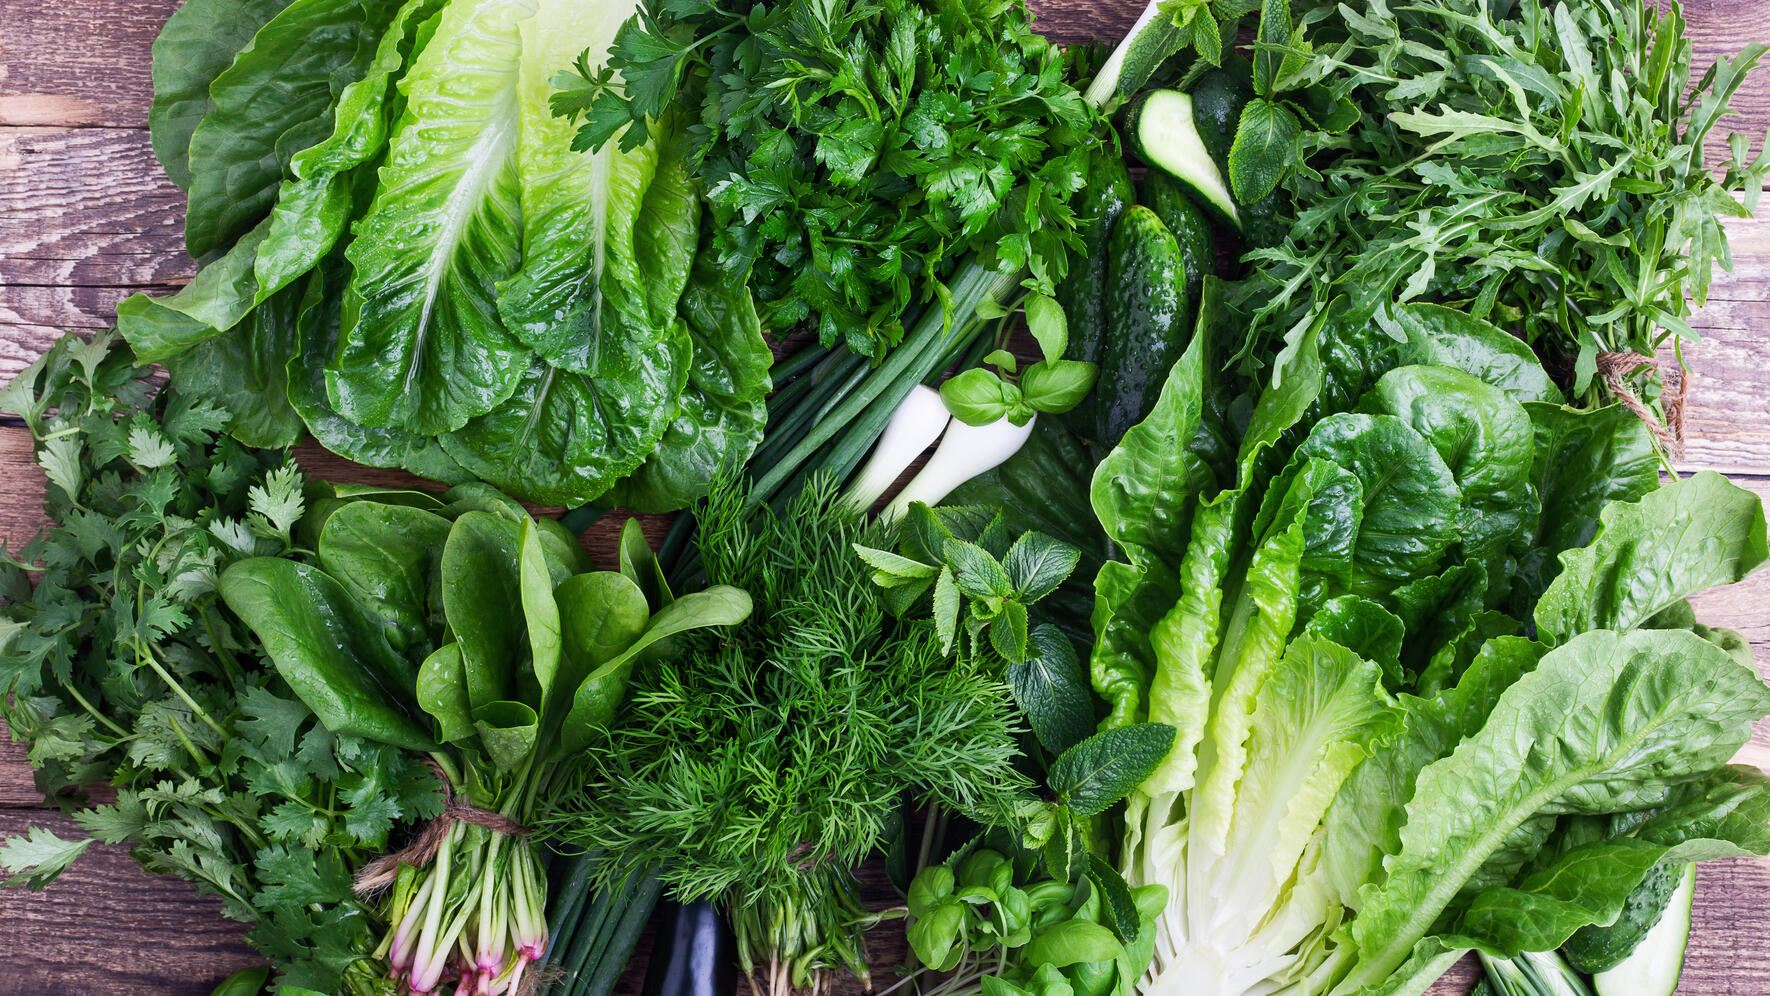 Fresh organic homegrown herbs and leaf vegetables background. Arugula, romaine lettuce,dill, parsley,  cilantro, green onion,basil, cucumber and spinach bunches on wooden background viewed from above